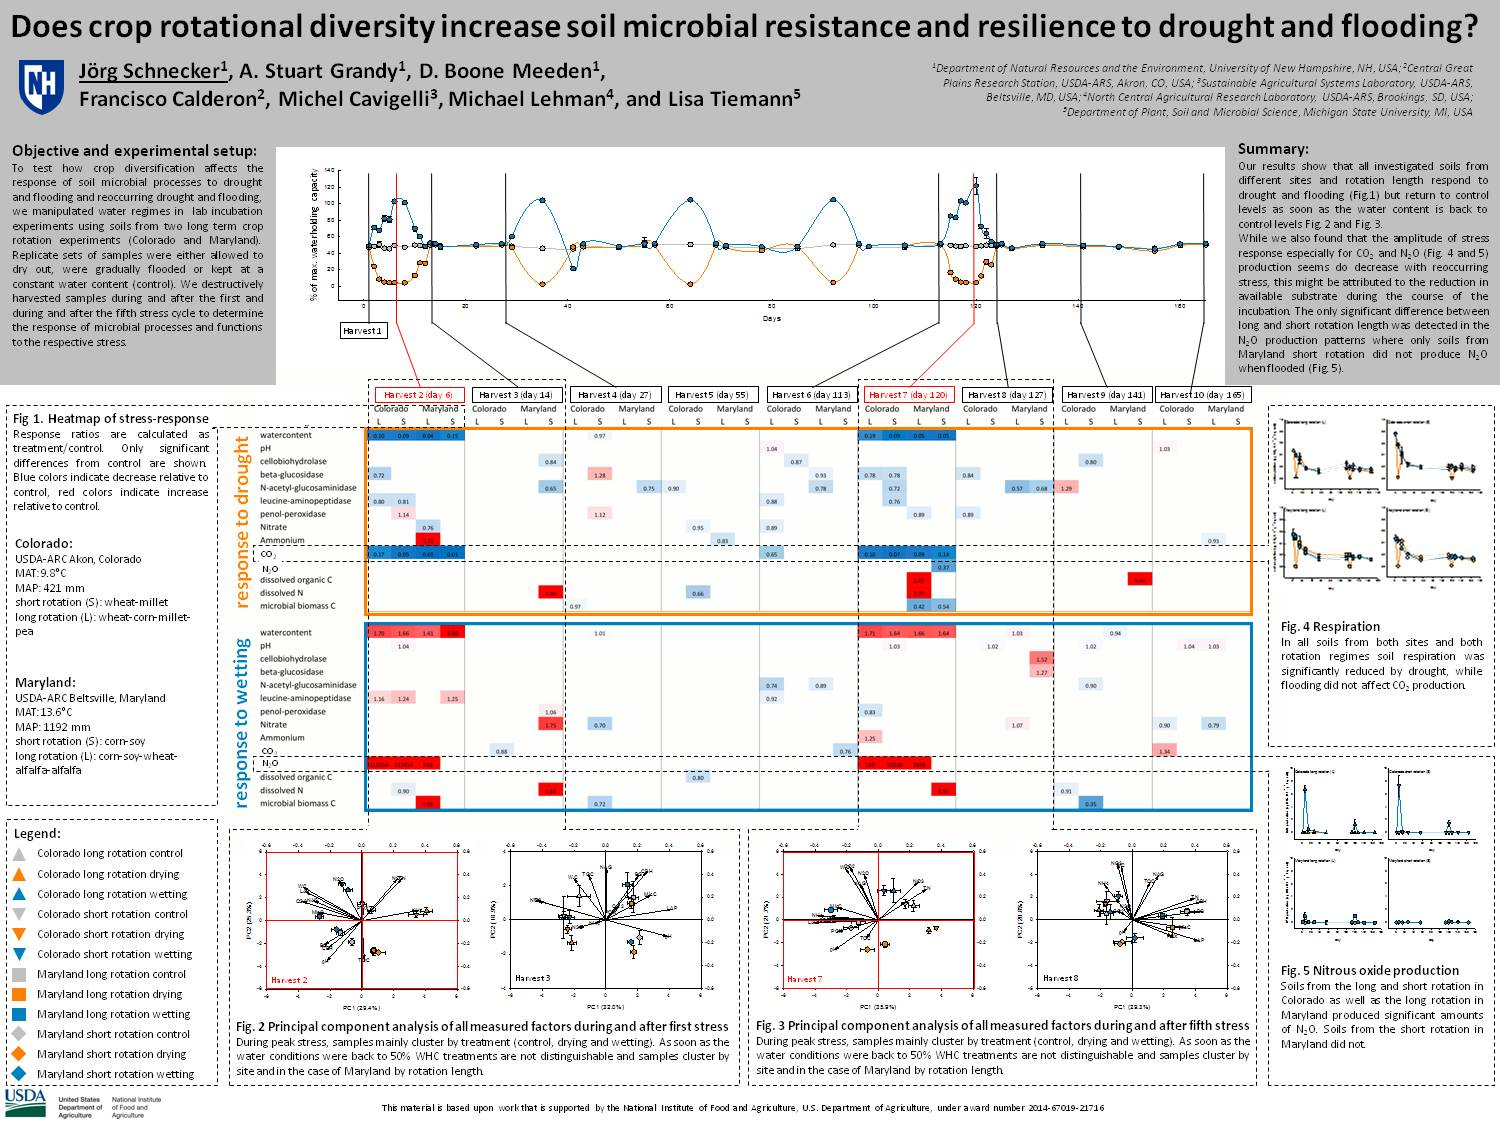 Does Crop Rotational Diversity Increase Soil Microbial Resistance And Resilience To Drought And Flooding? by Joerg_Schnecker